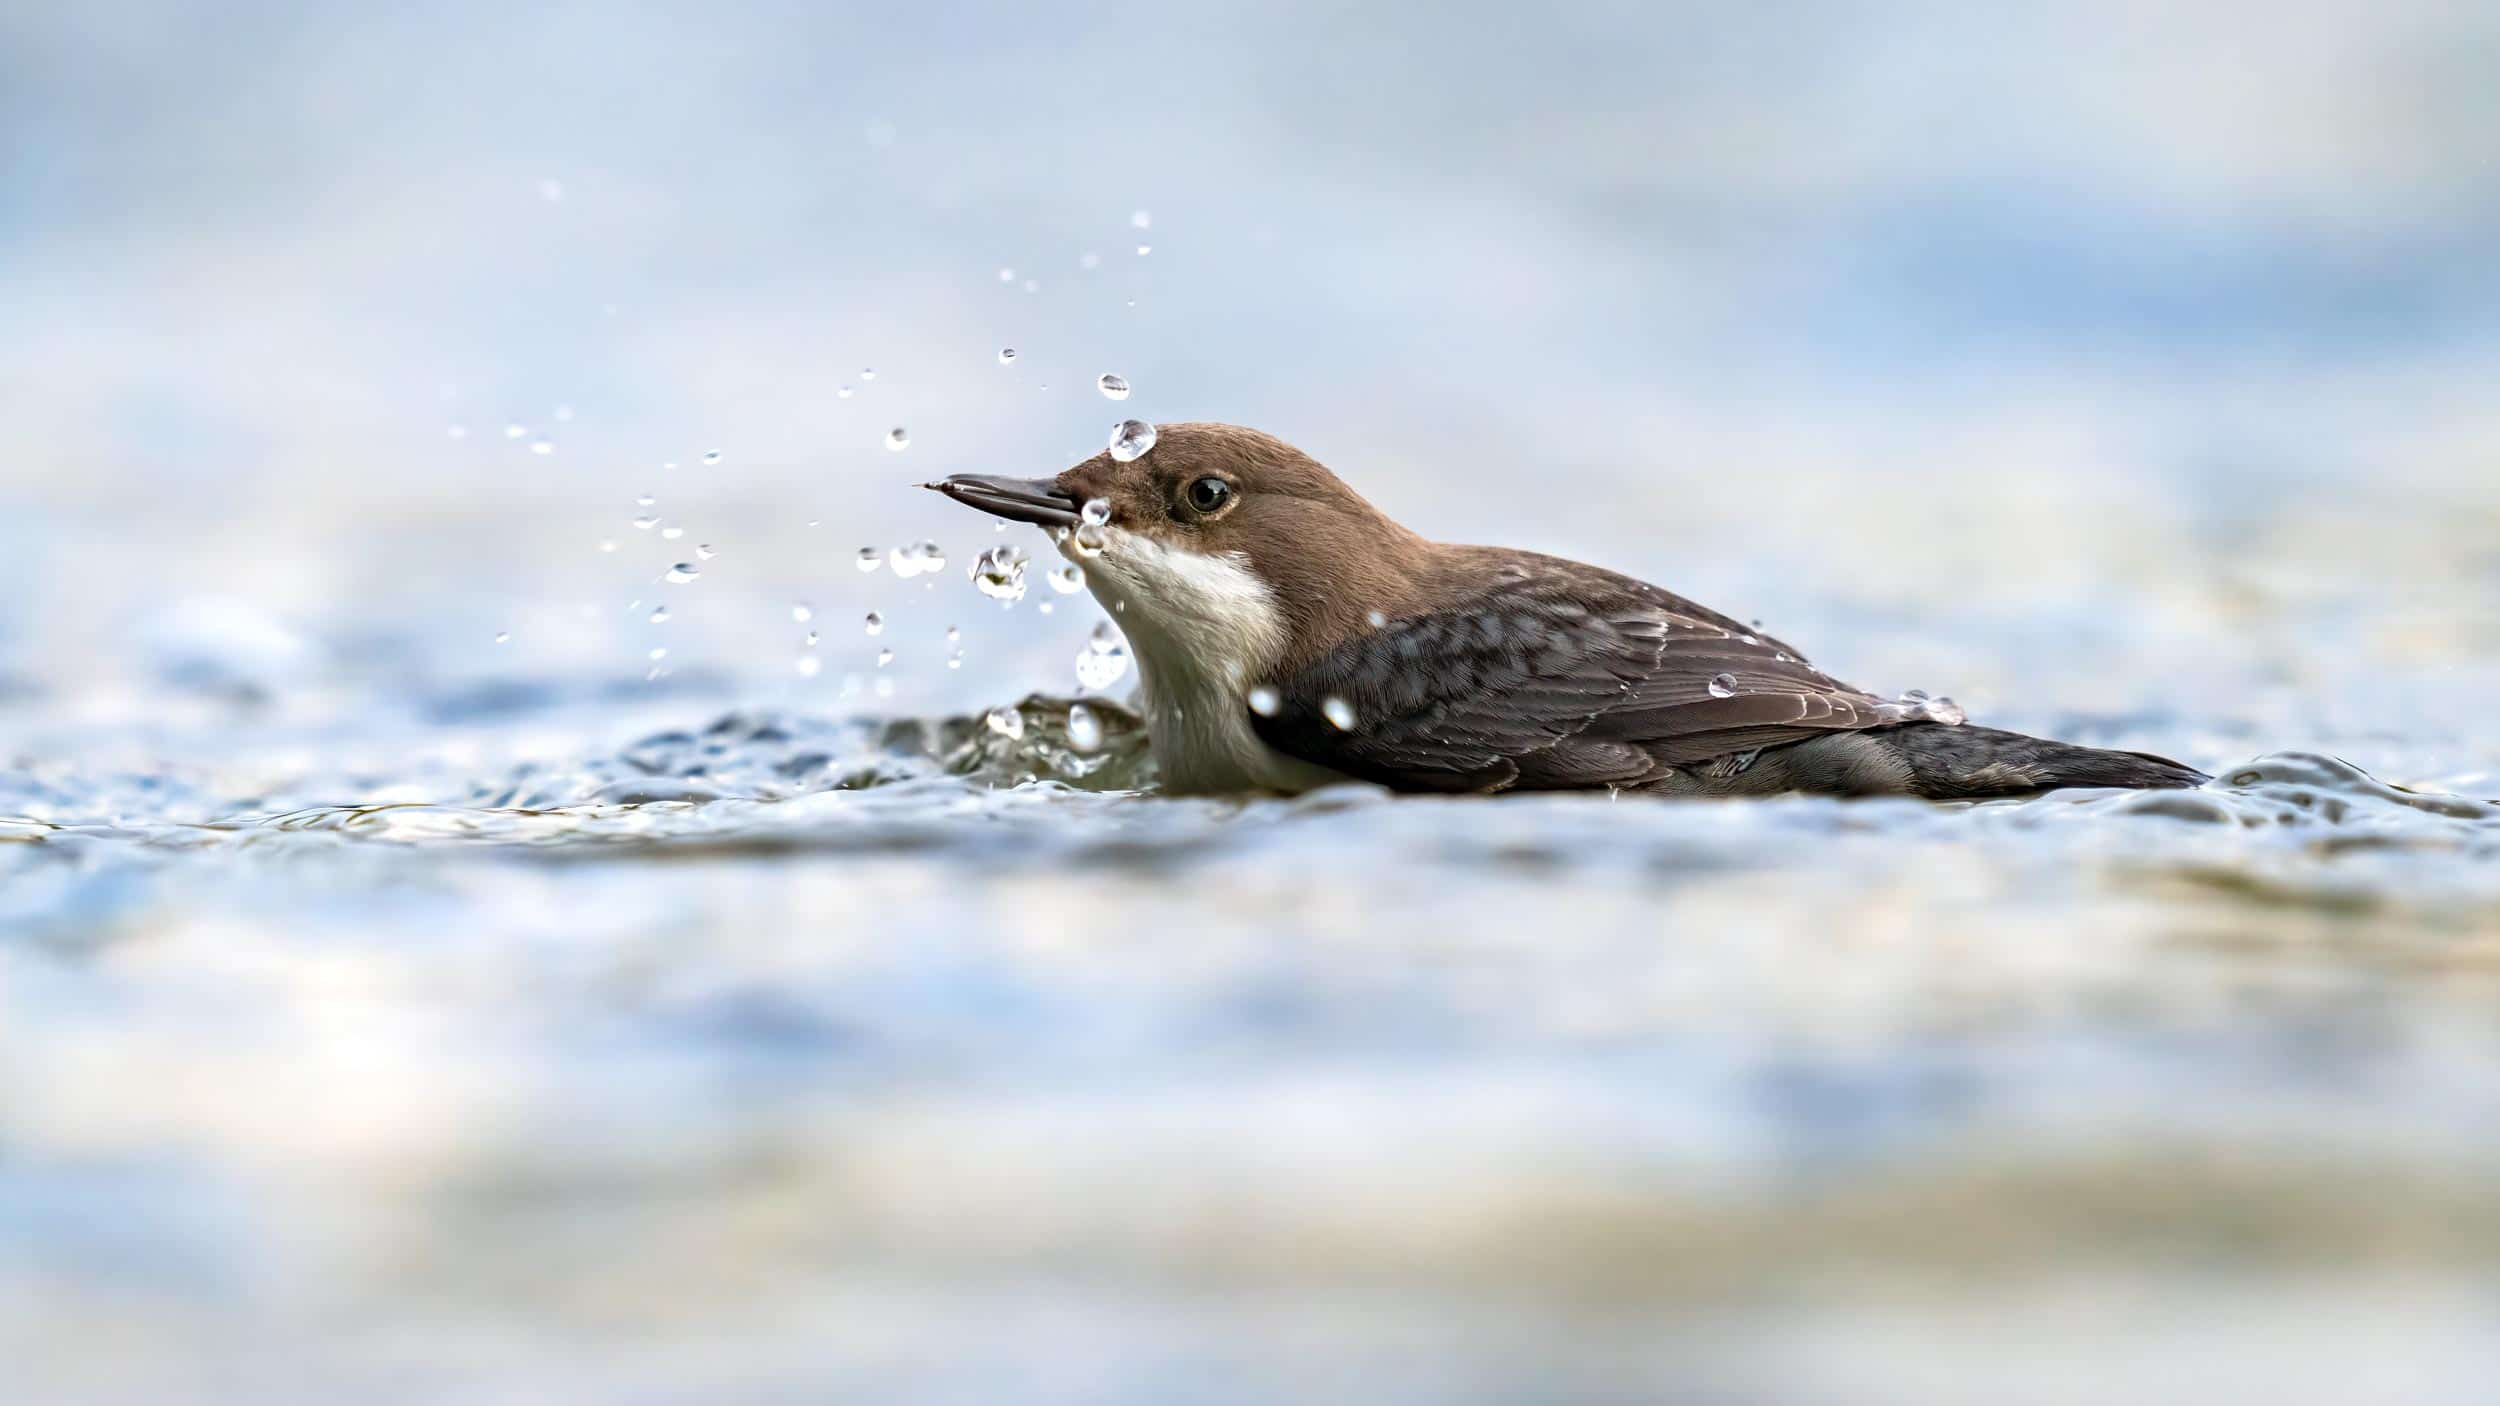 Dipper photographed in Lucerne, Switzerland